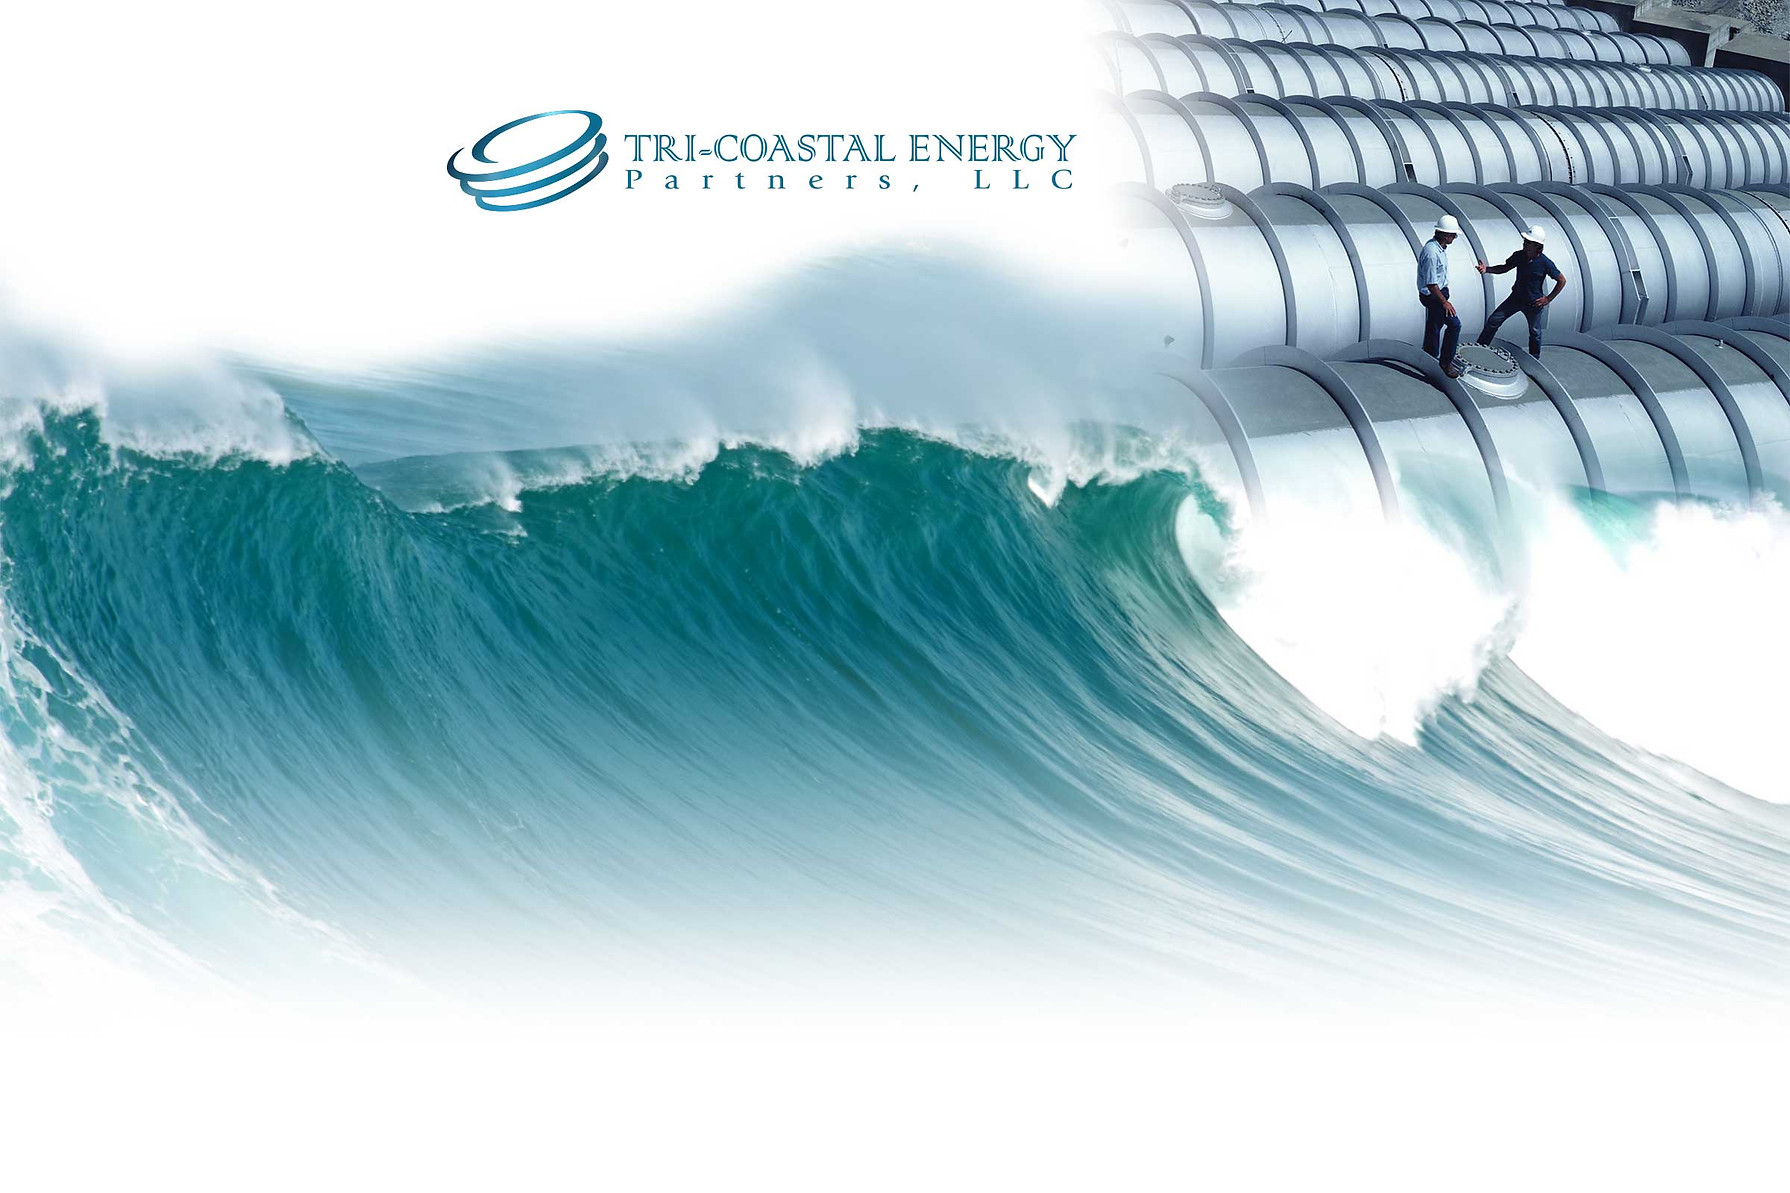 Tri-Coastal Energy Partners, LLC